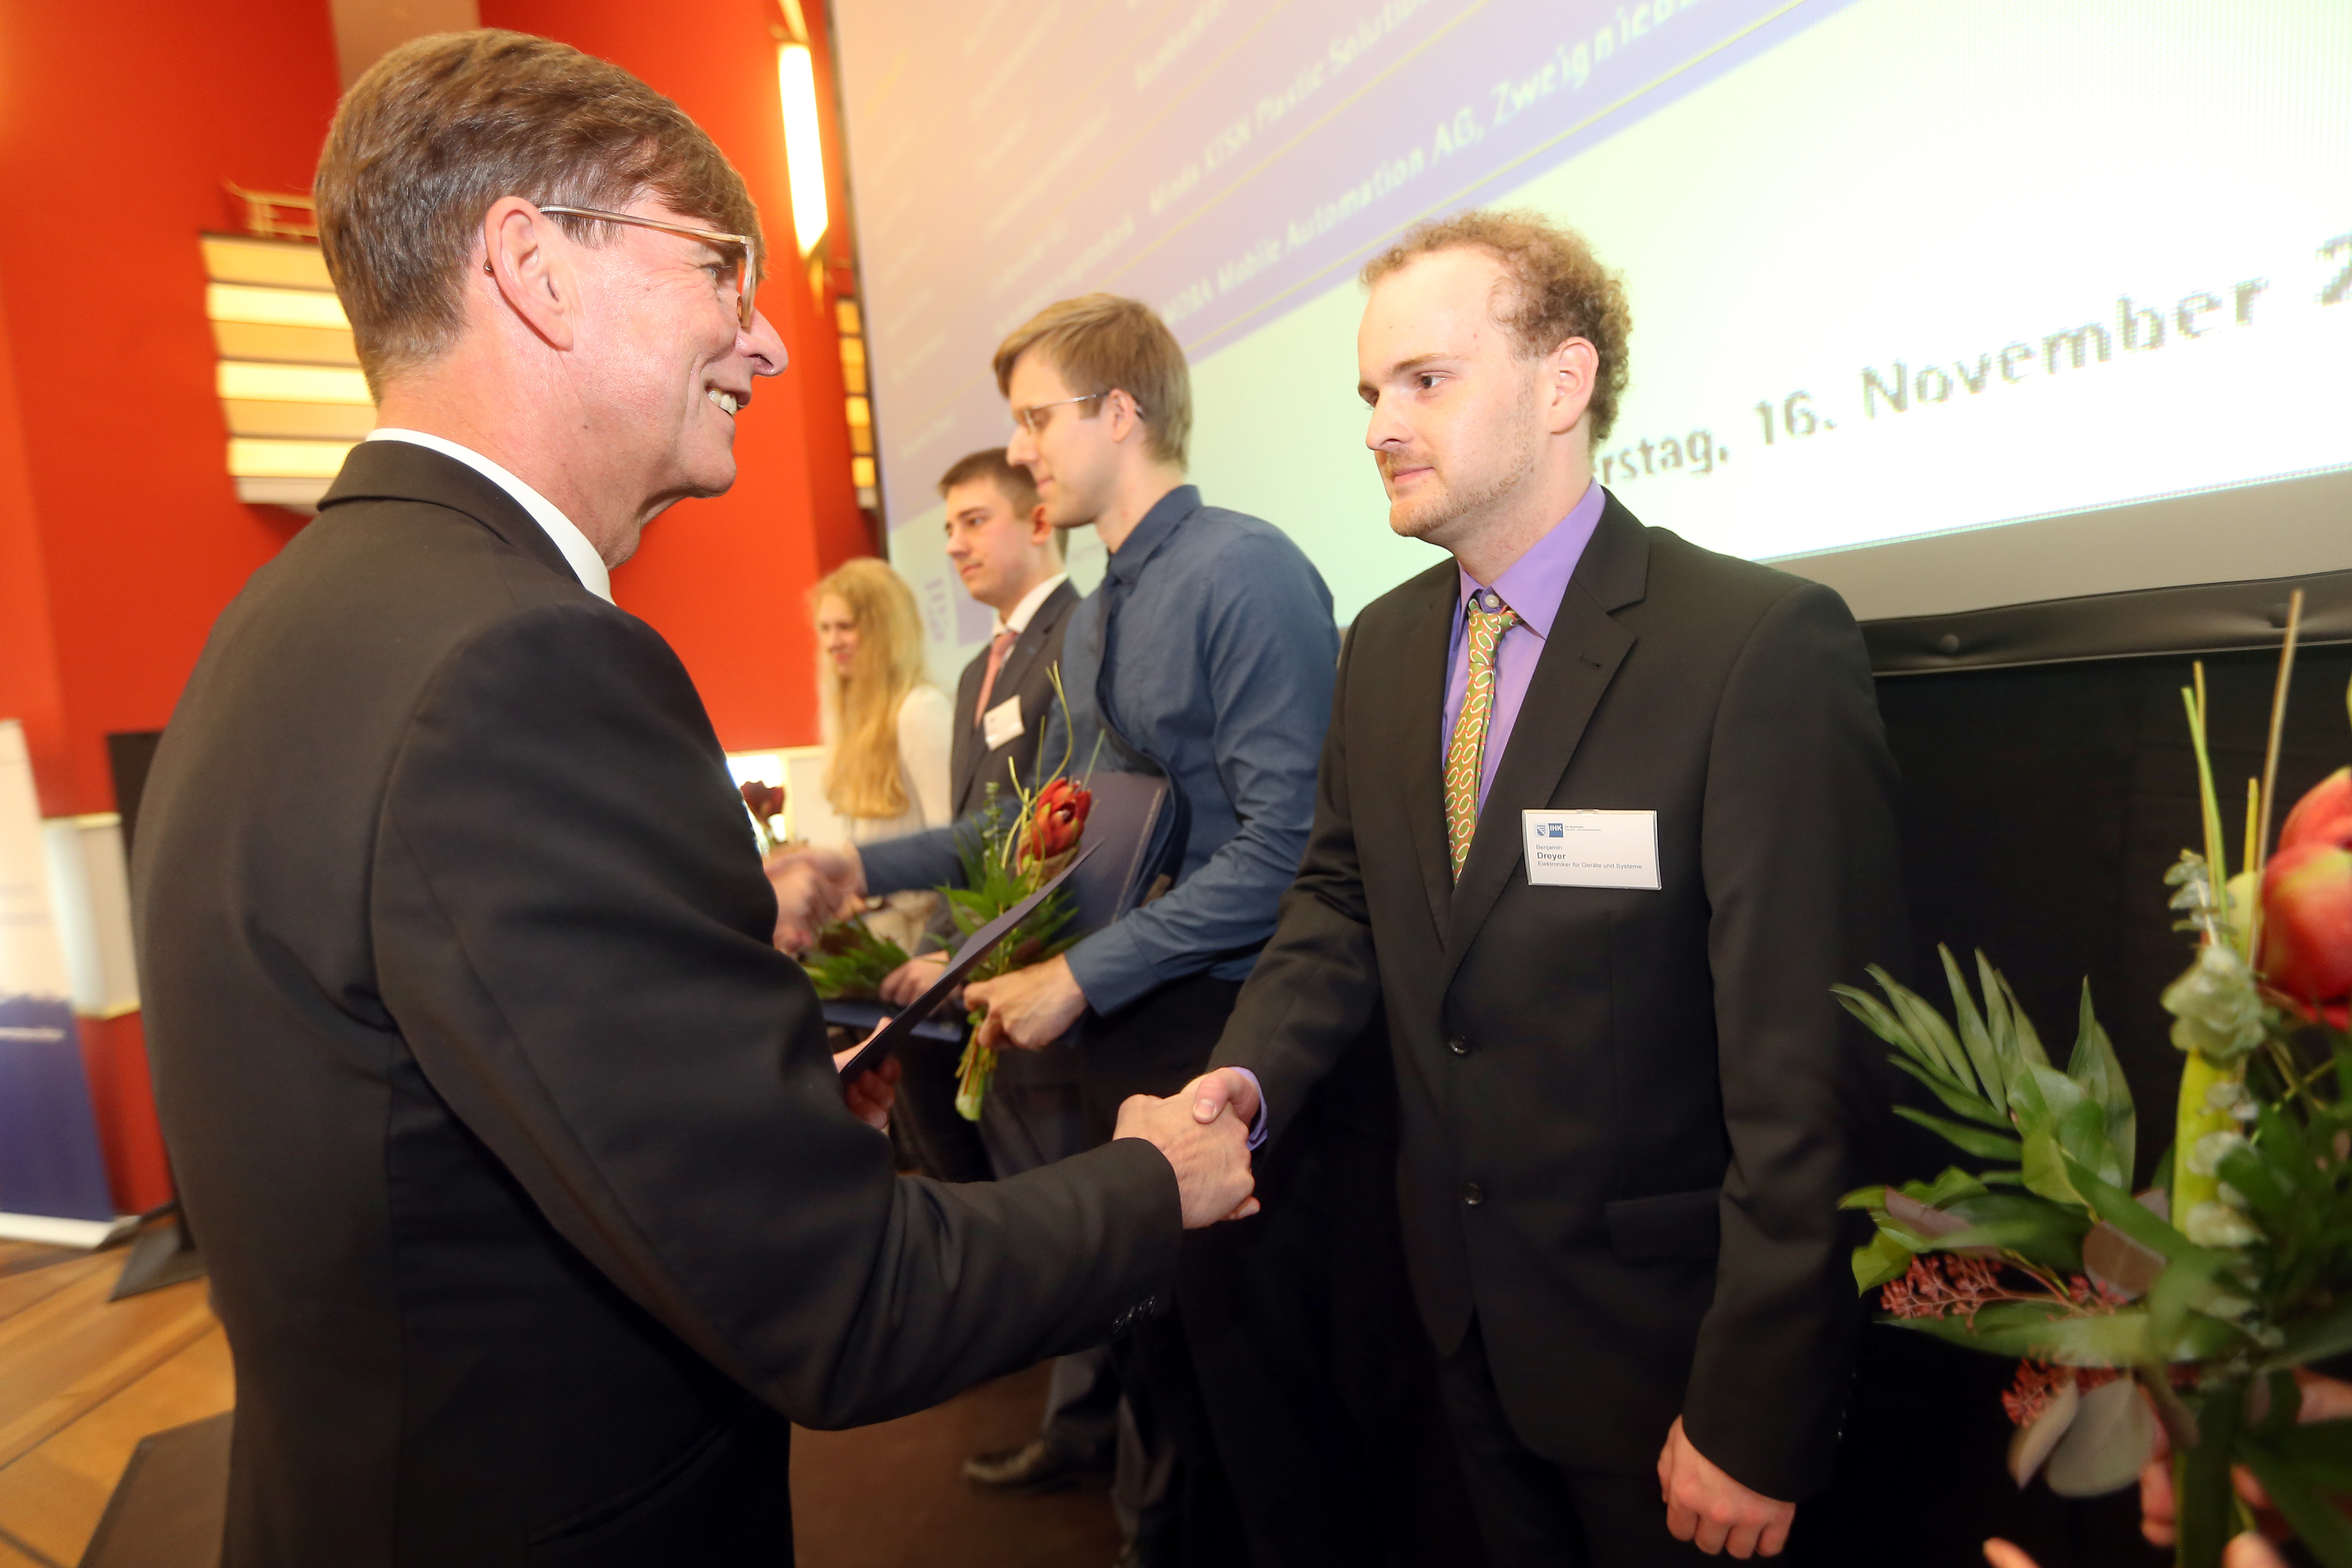 Handover of award, photo by Mrs. Jungnickel